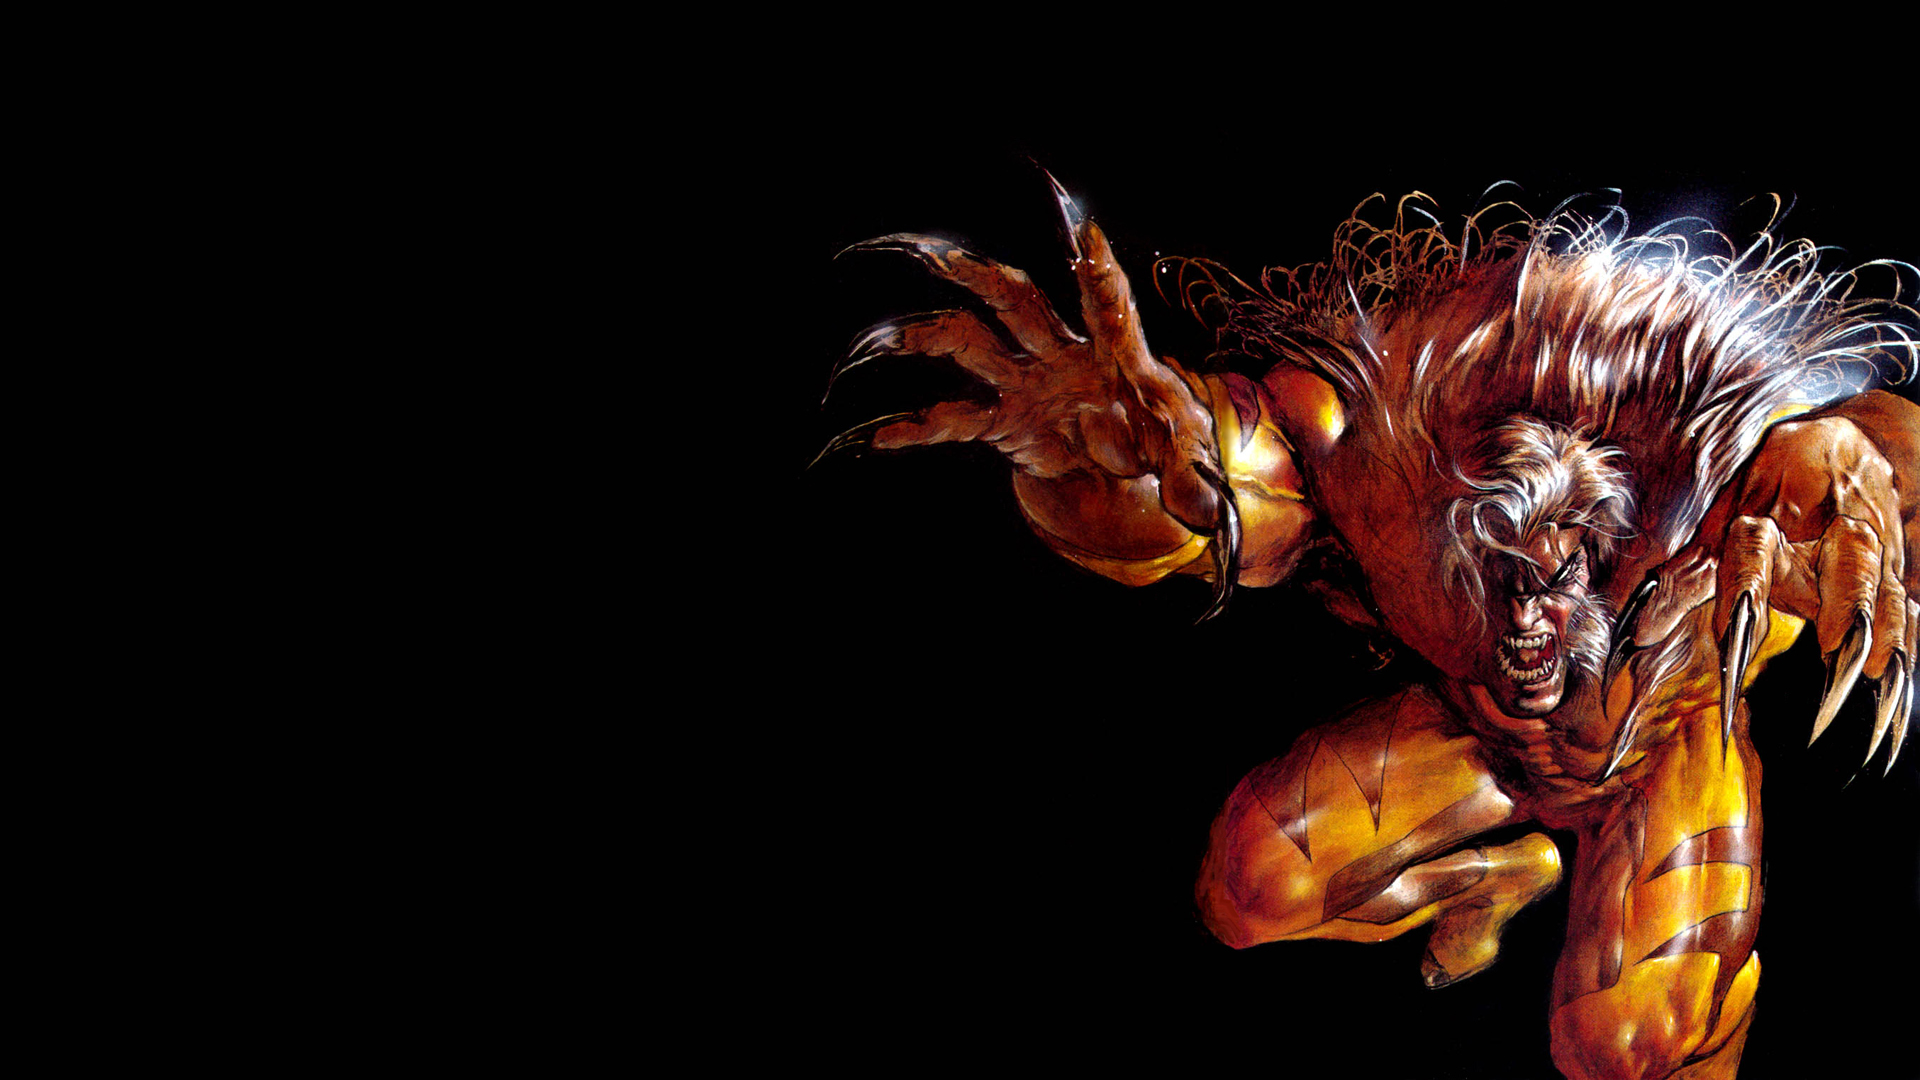 Saber Tooth Tiger 3d Wallpaper Sabretooth Full Hd Wallpaper And Background 1920x1080